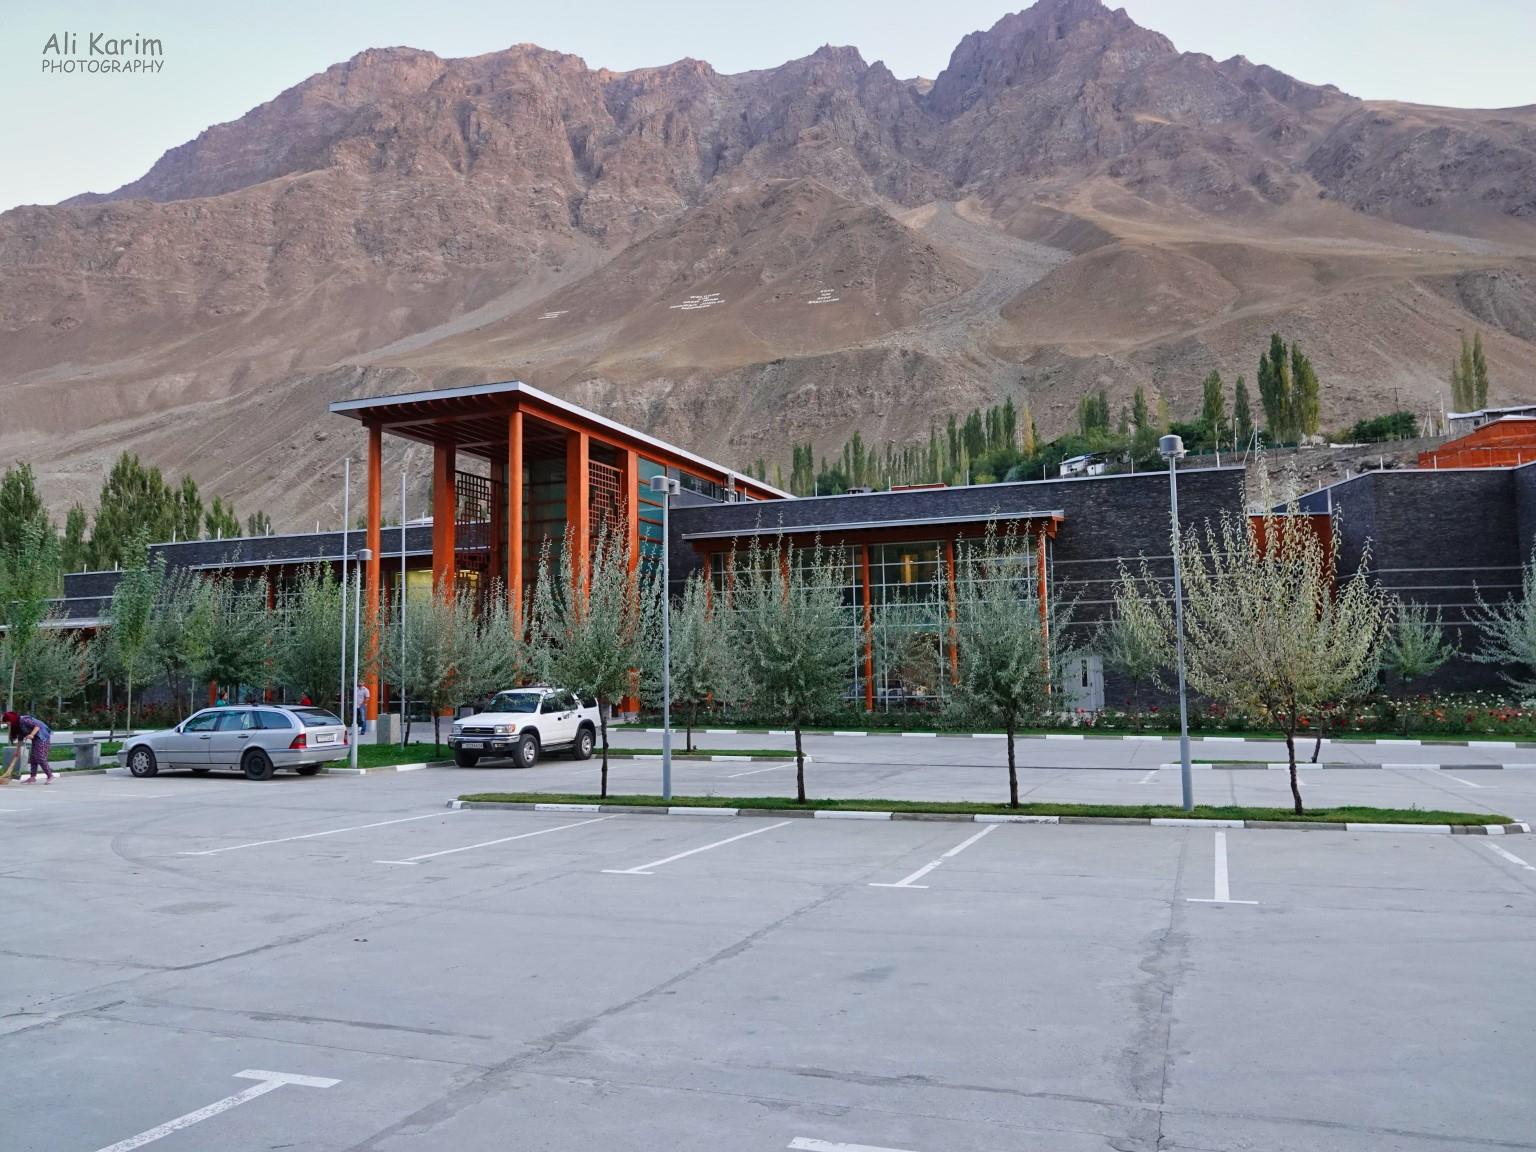 More Khorog, Tajikistan Parking lot and main entrance to the Ismaili Center